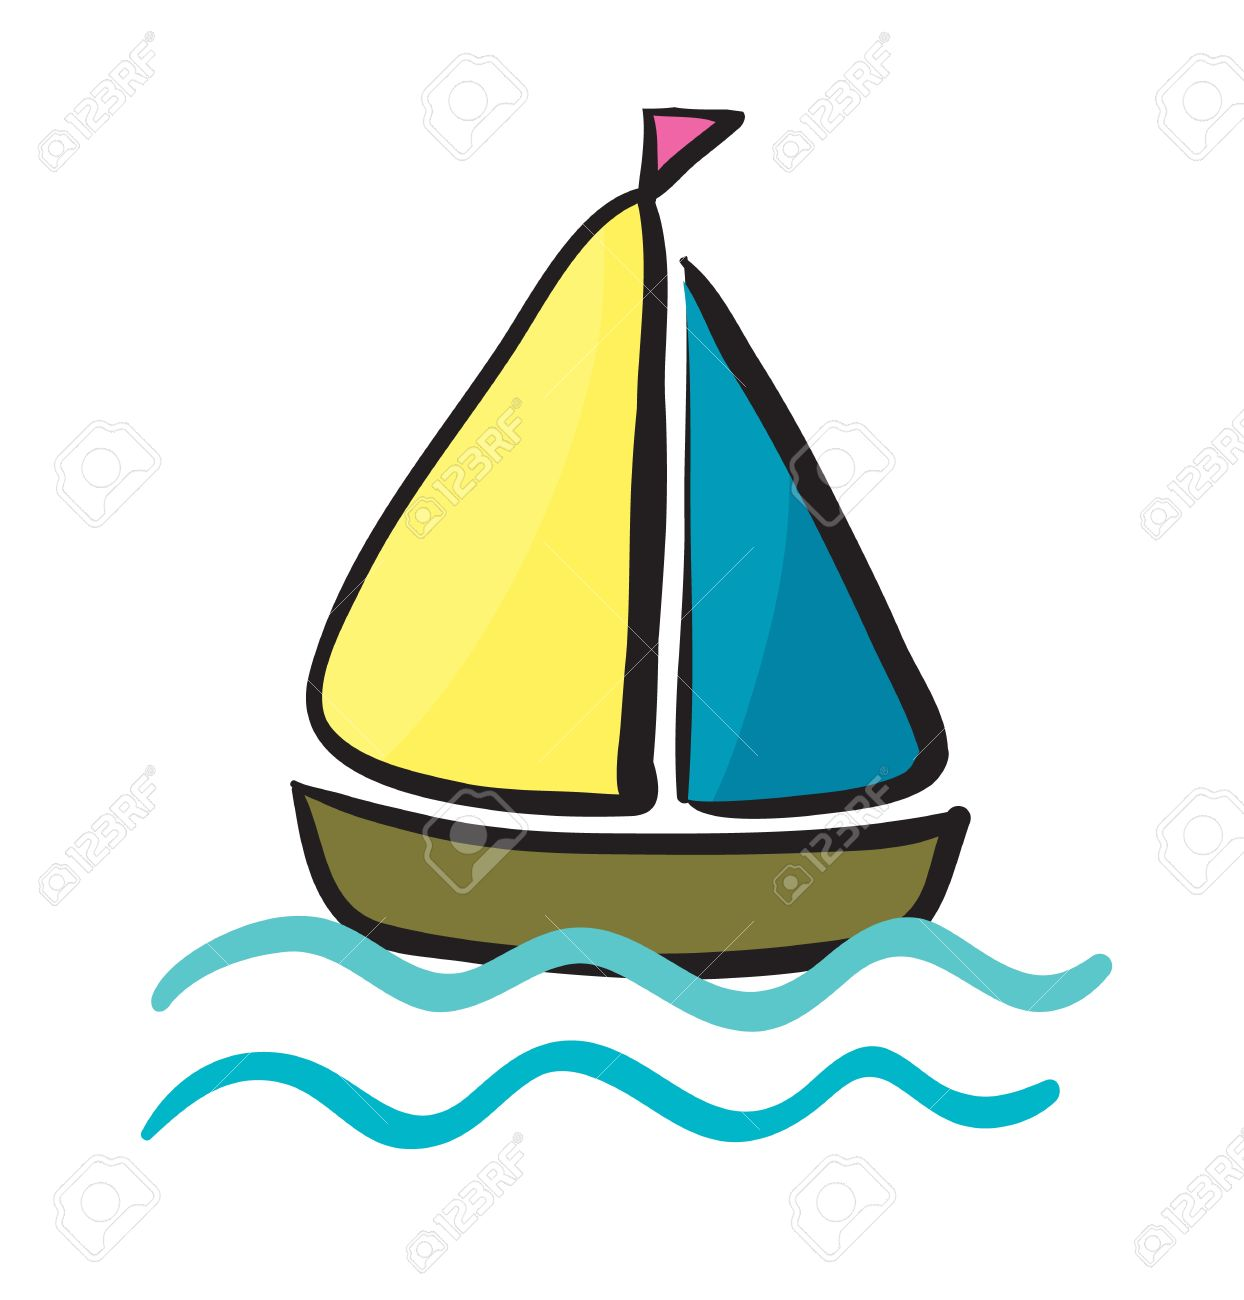 1244x1300 Illustration Of A Ship On A White Background Royalty Free Cliparts